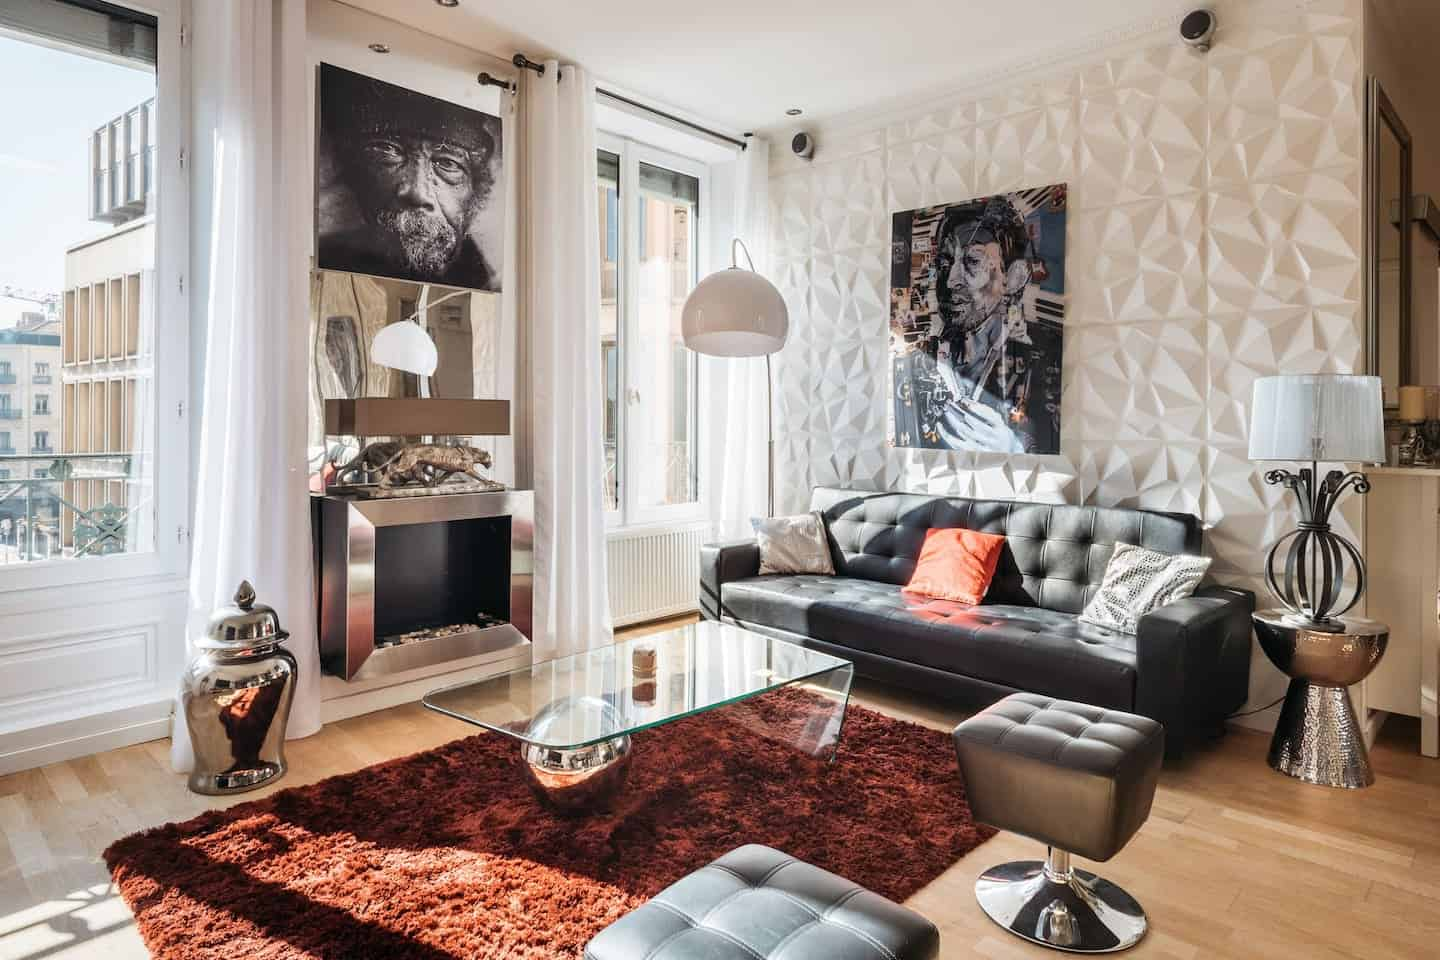 Image of Airbnb rental in Lyon, France